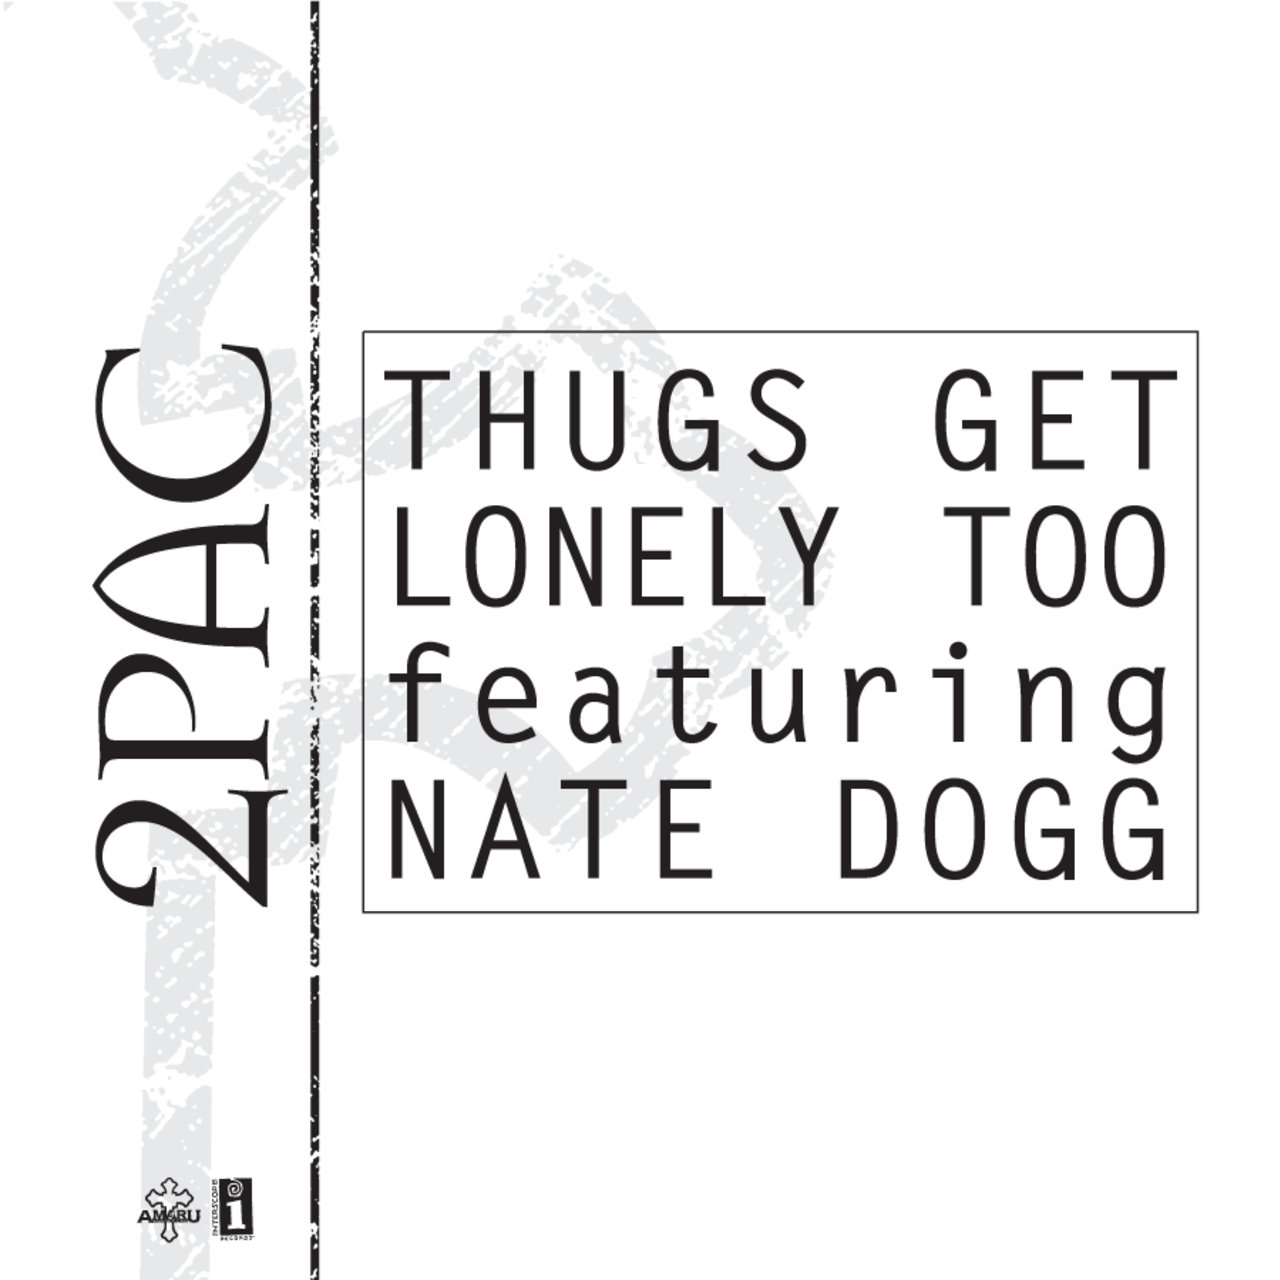 Thugs Get Lonely Too featuring Nate Dogg